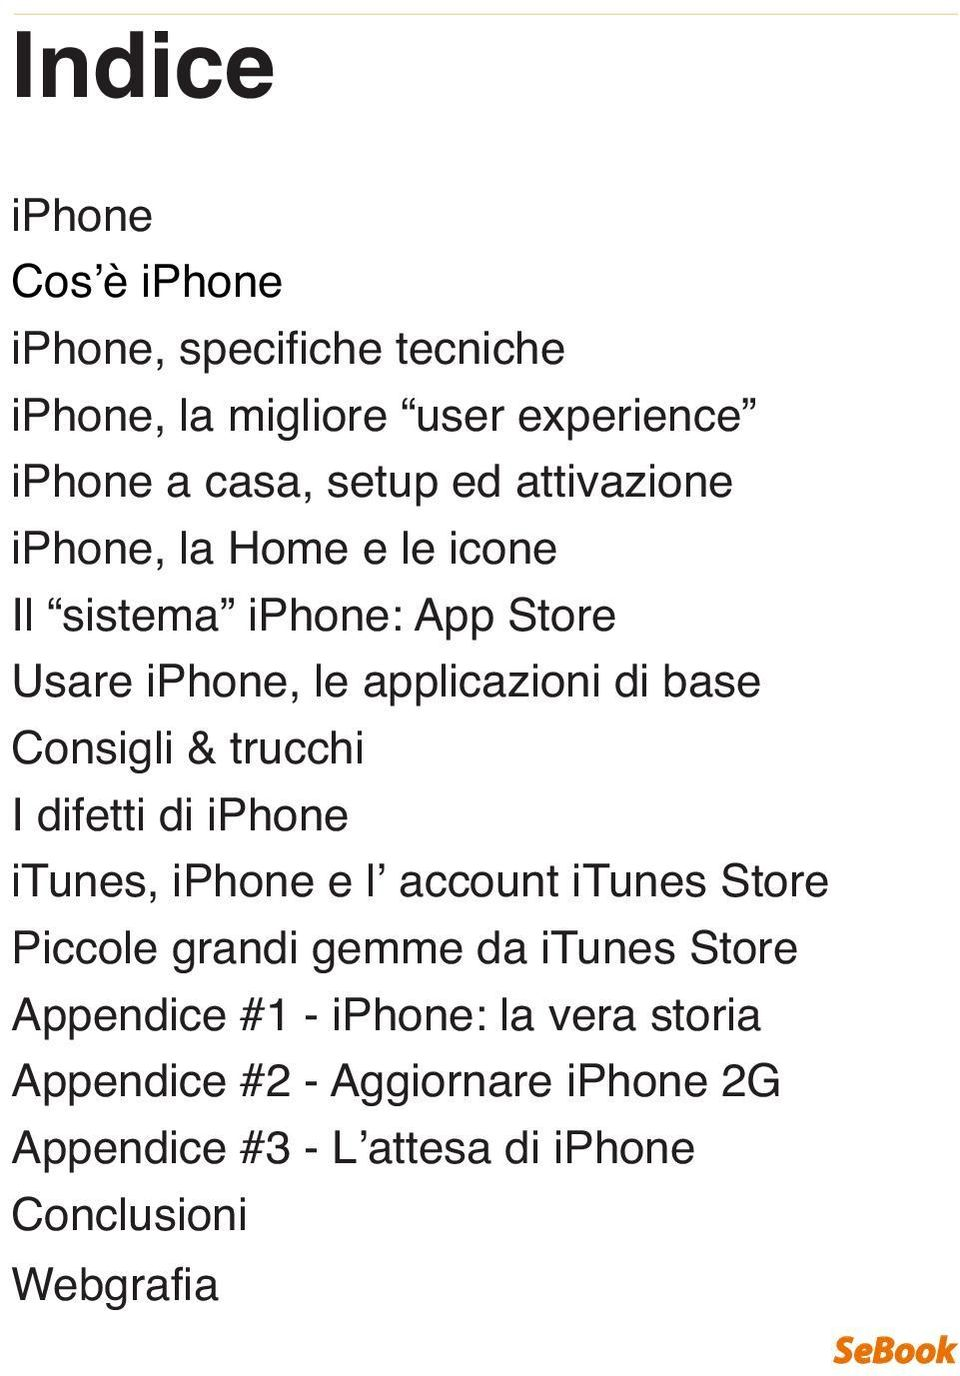 trucchi I difetti di iphone itunes, iphone e l' account itunes Store Piccole grandi gemme da itunes Store Appendice